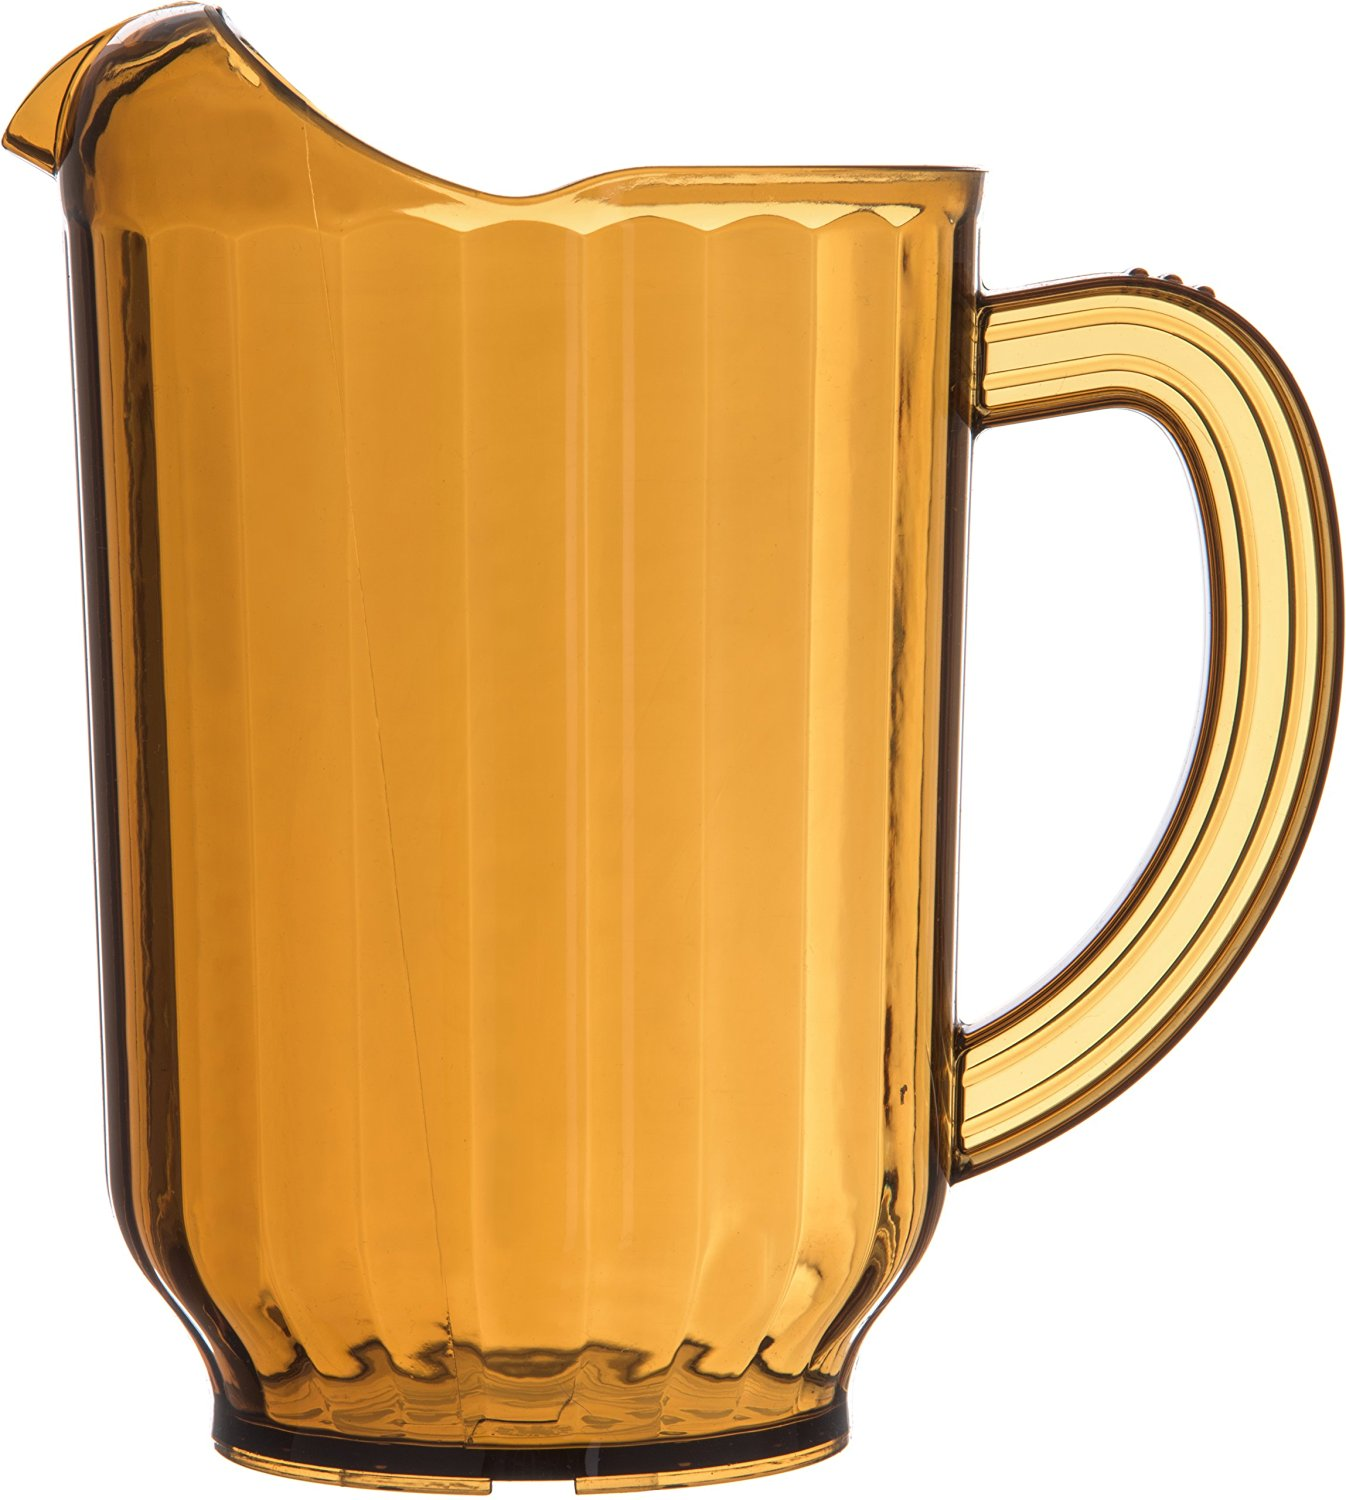 "Carlisle 554013 60 oz Capacity, 3.62"" Base Diameter x 8.25"" Height, Amber Color, Polycarbonate VersaPour Pitcher"